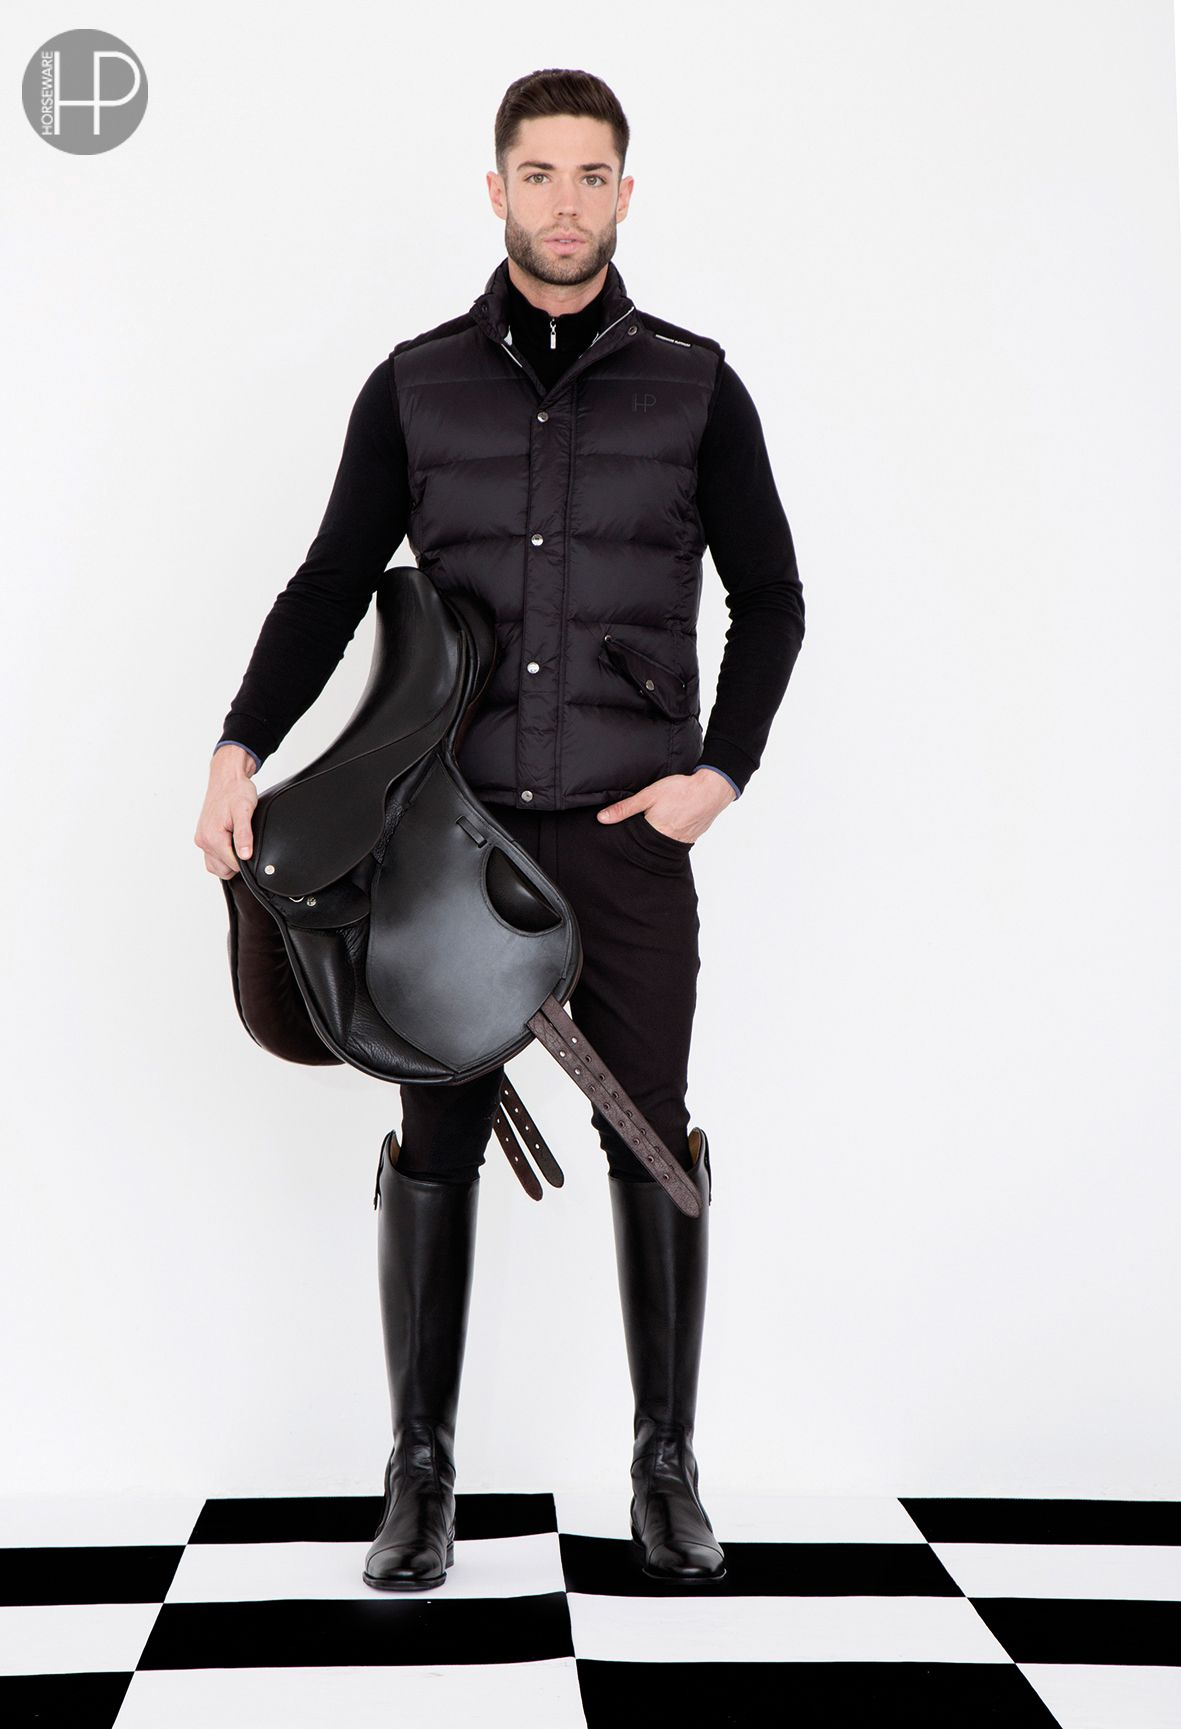 Explore Men's Equestrian, Equestrian Outfits, and more!